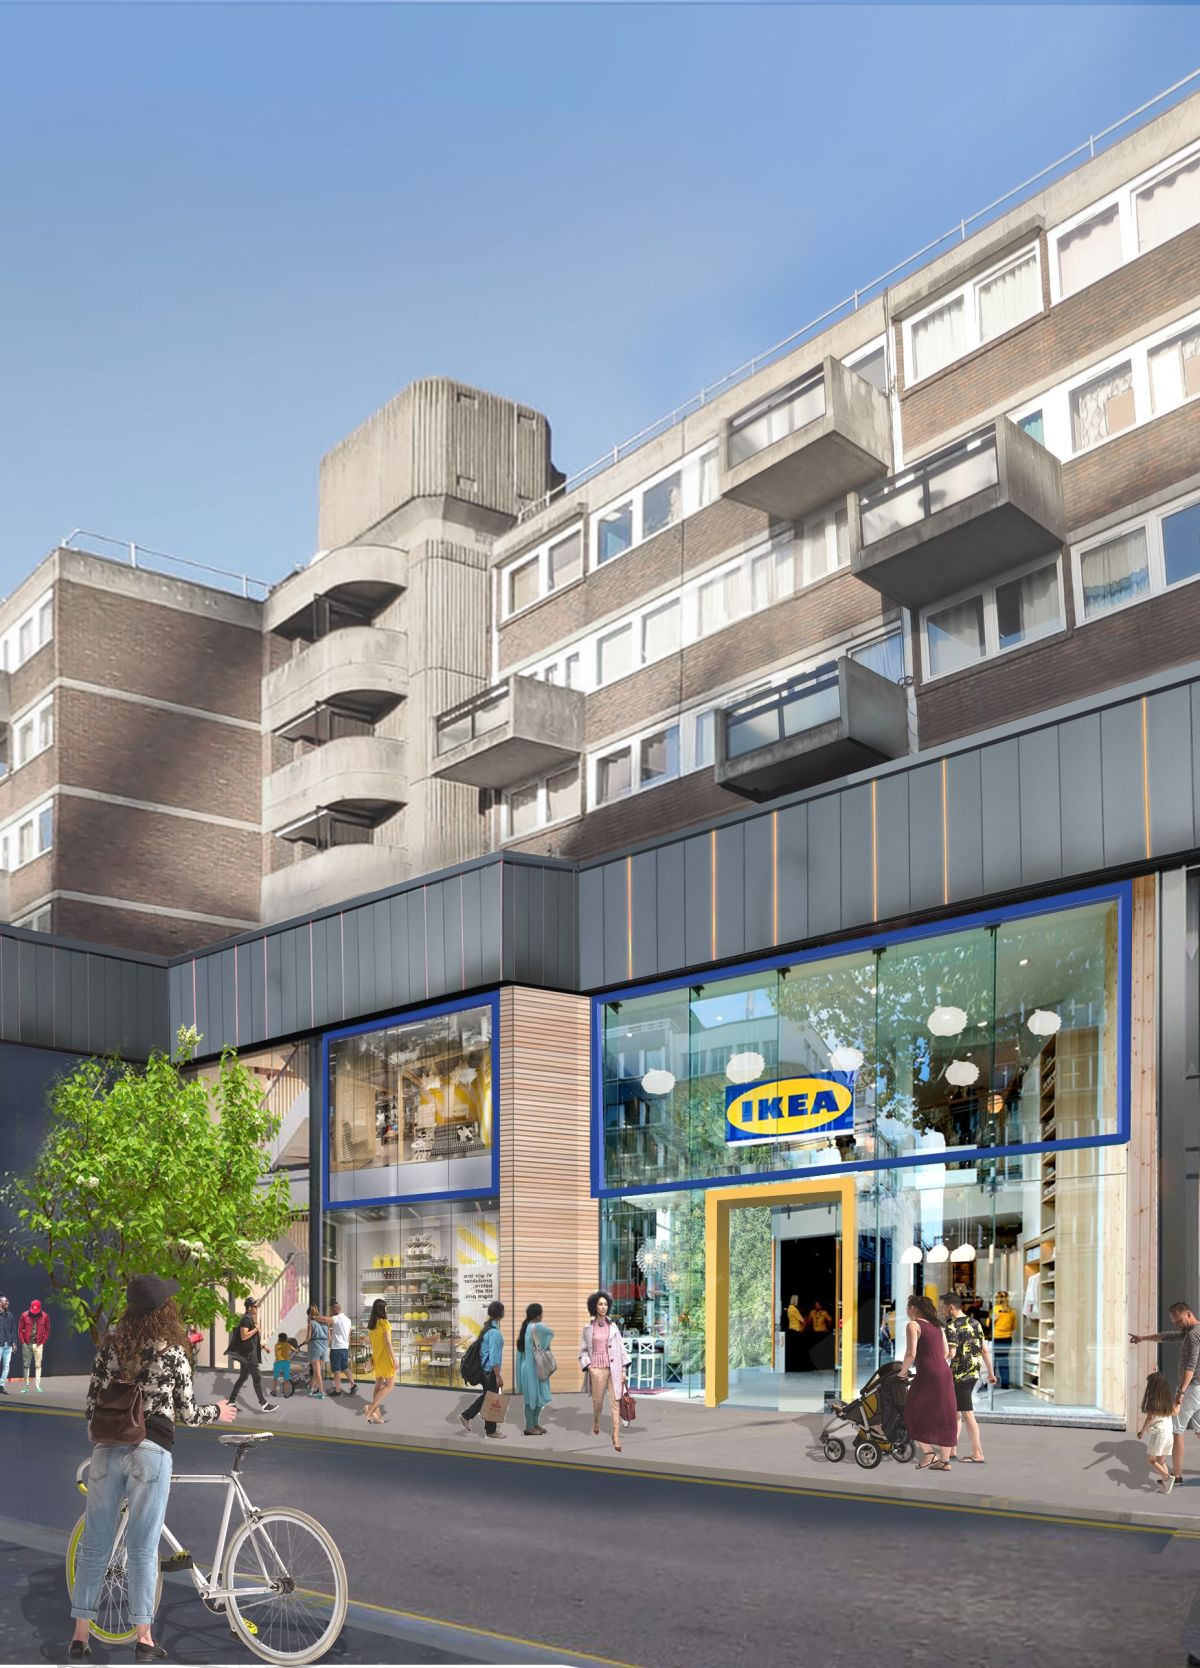 IKEA shops are coming to the highstreet